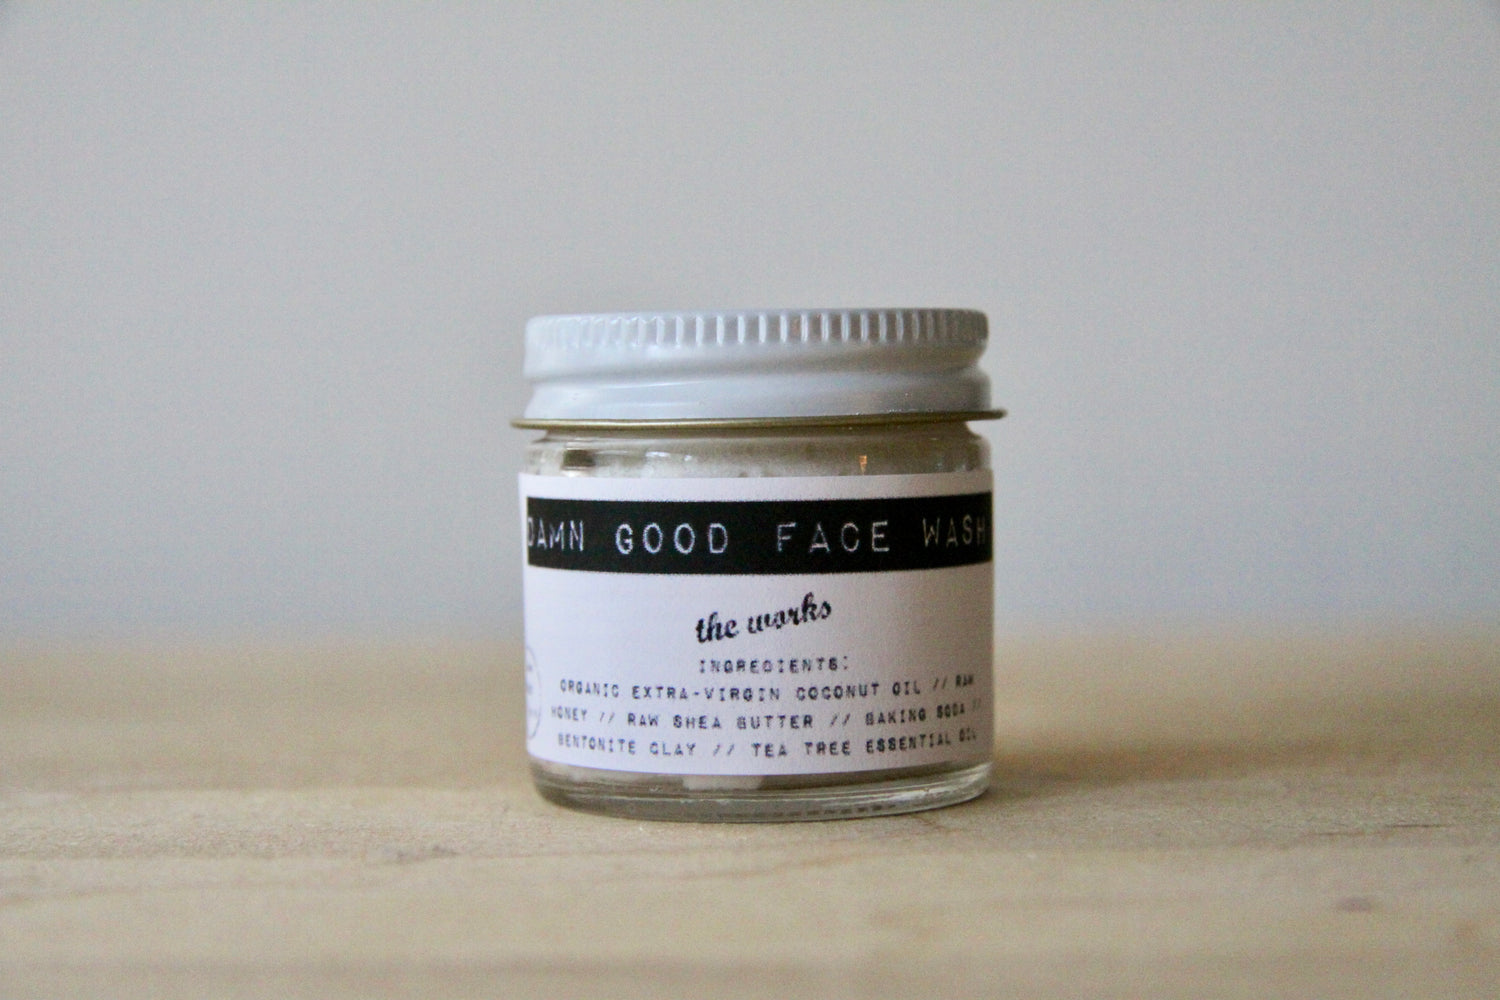 Damn Good Face Wash // The Works